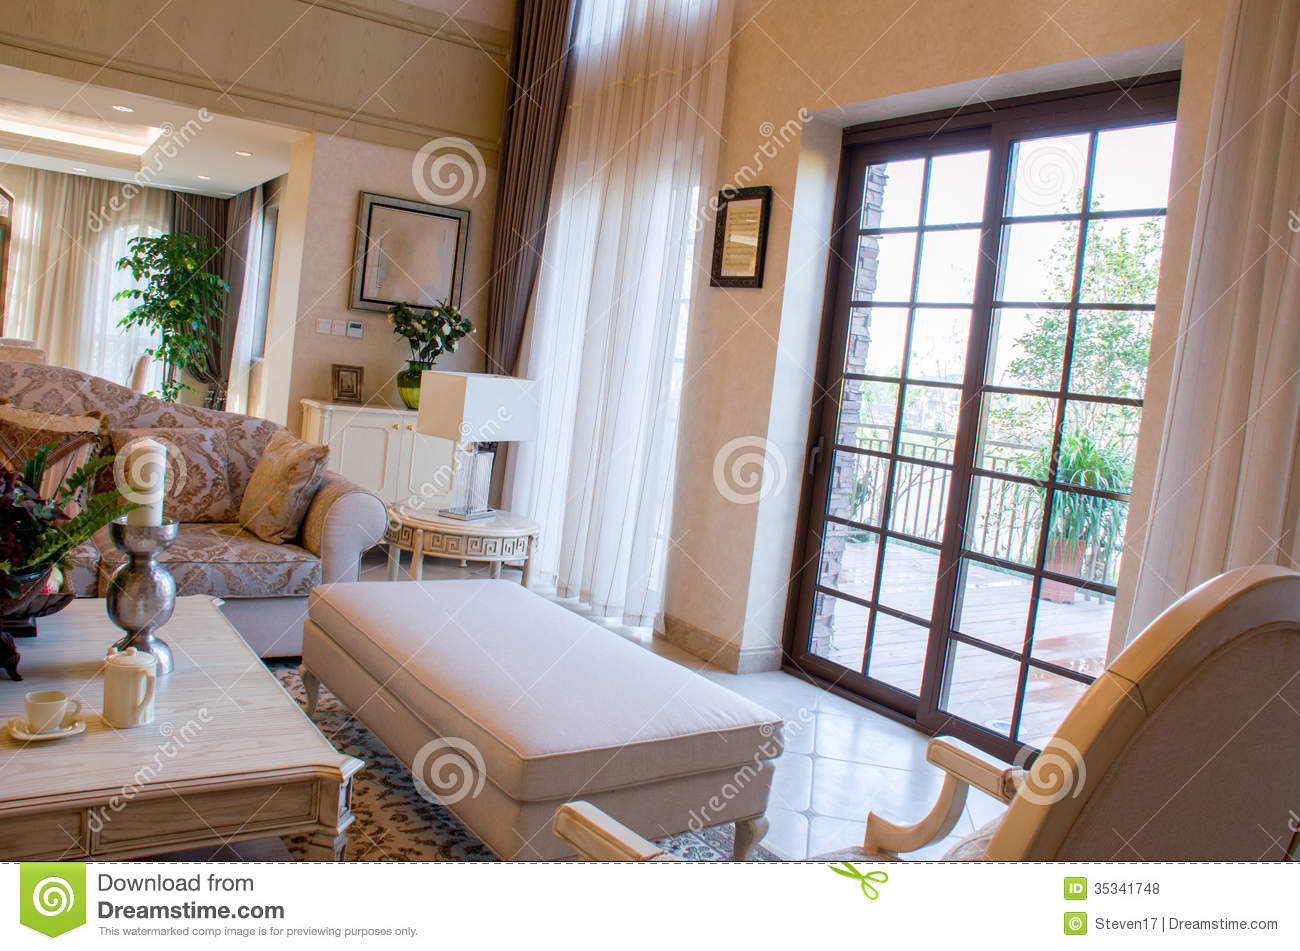 Sitting room royalty free stock photos image 35341748 for Beautiful sitting rooms